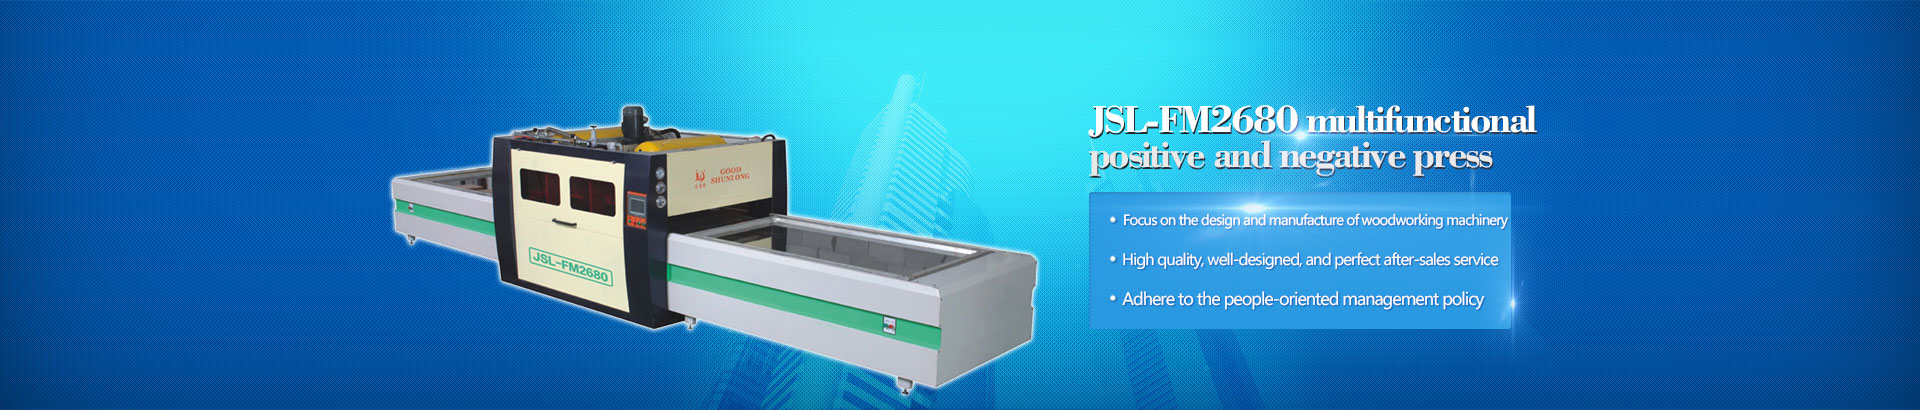 Foshan District of Shunde City Jia Shun Machinery Co. Ltd.